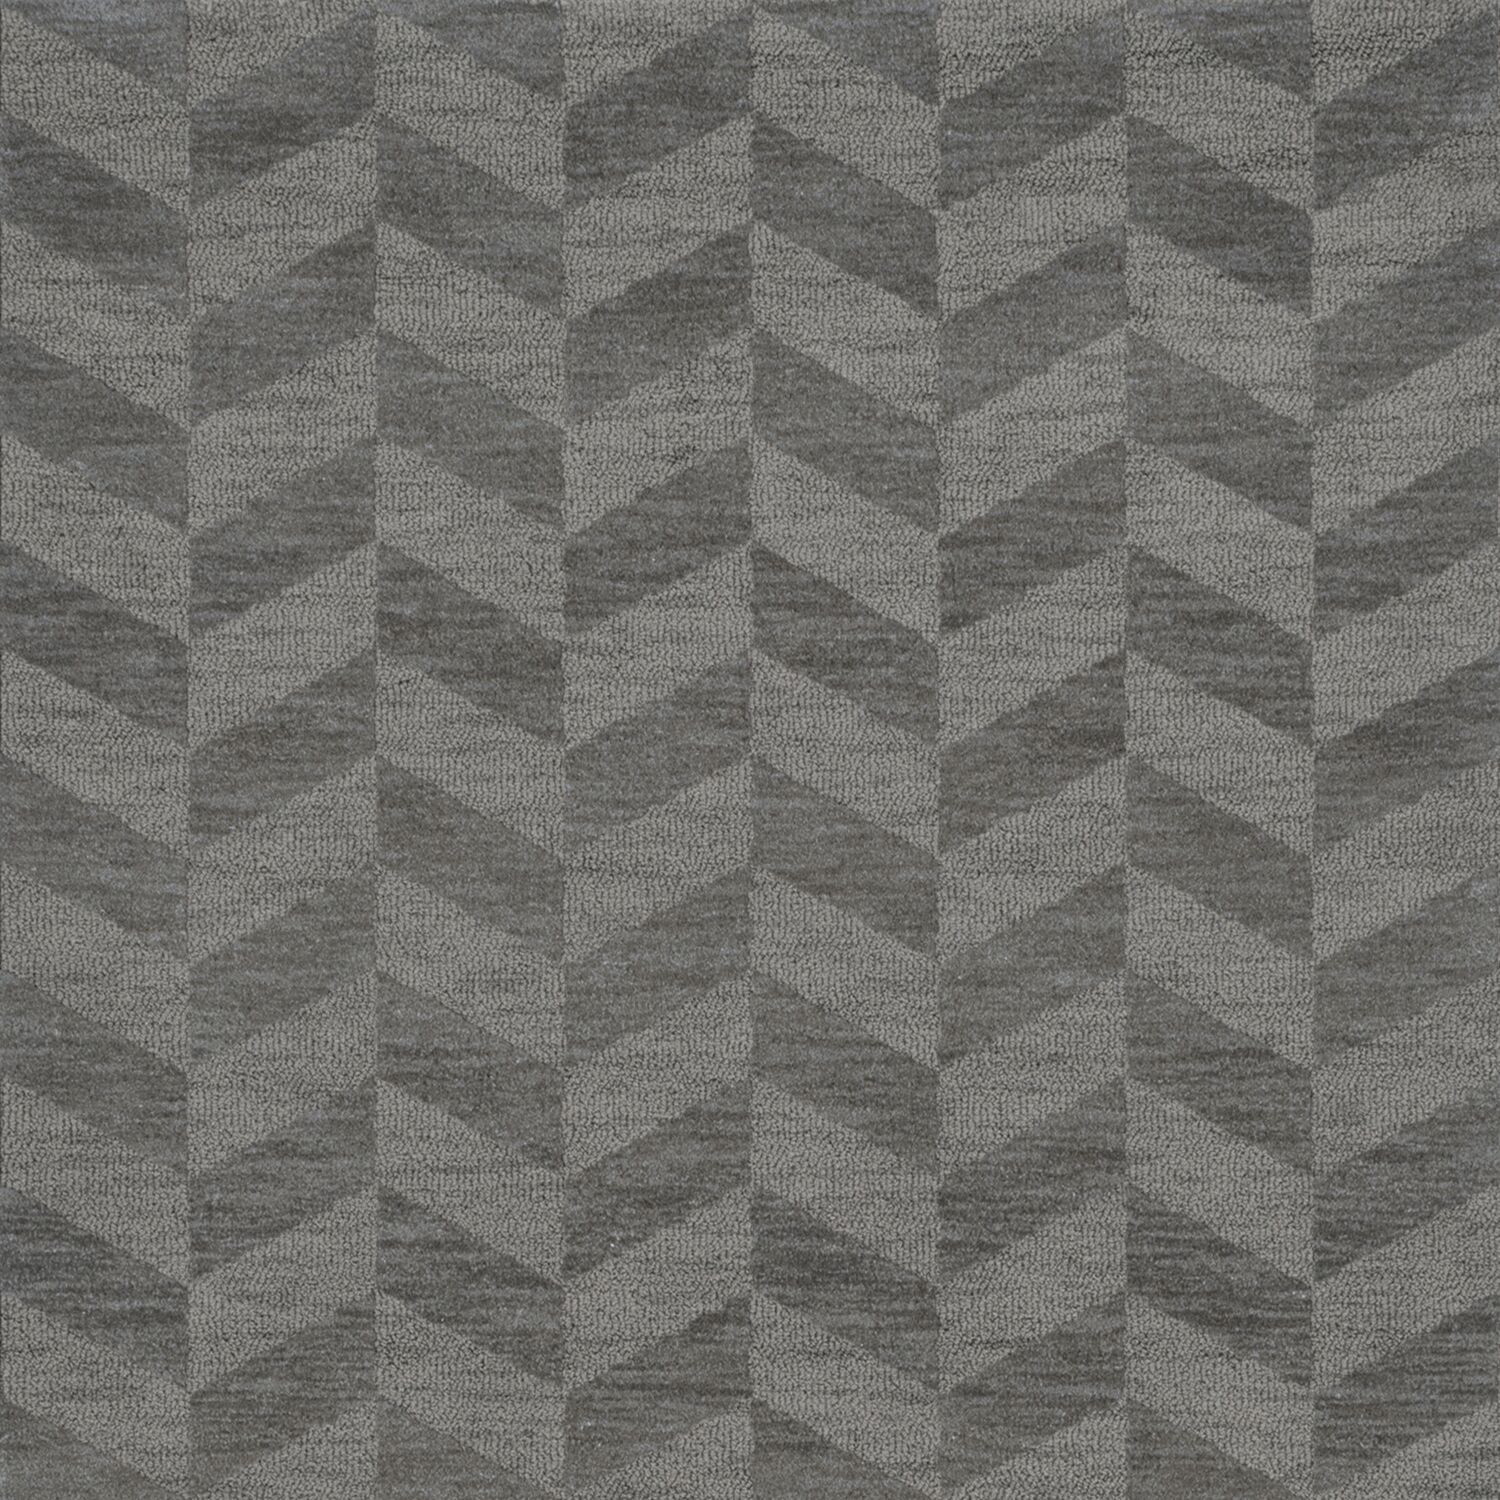 Bella Machine Woven Wool Gray Area Rug Rug Size: Square 10'